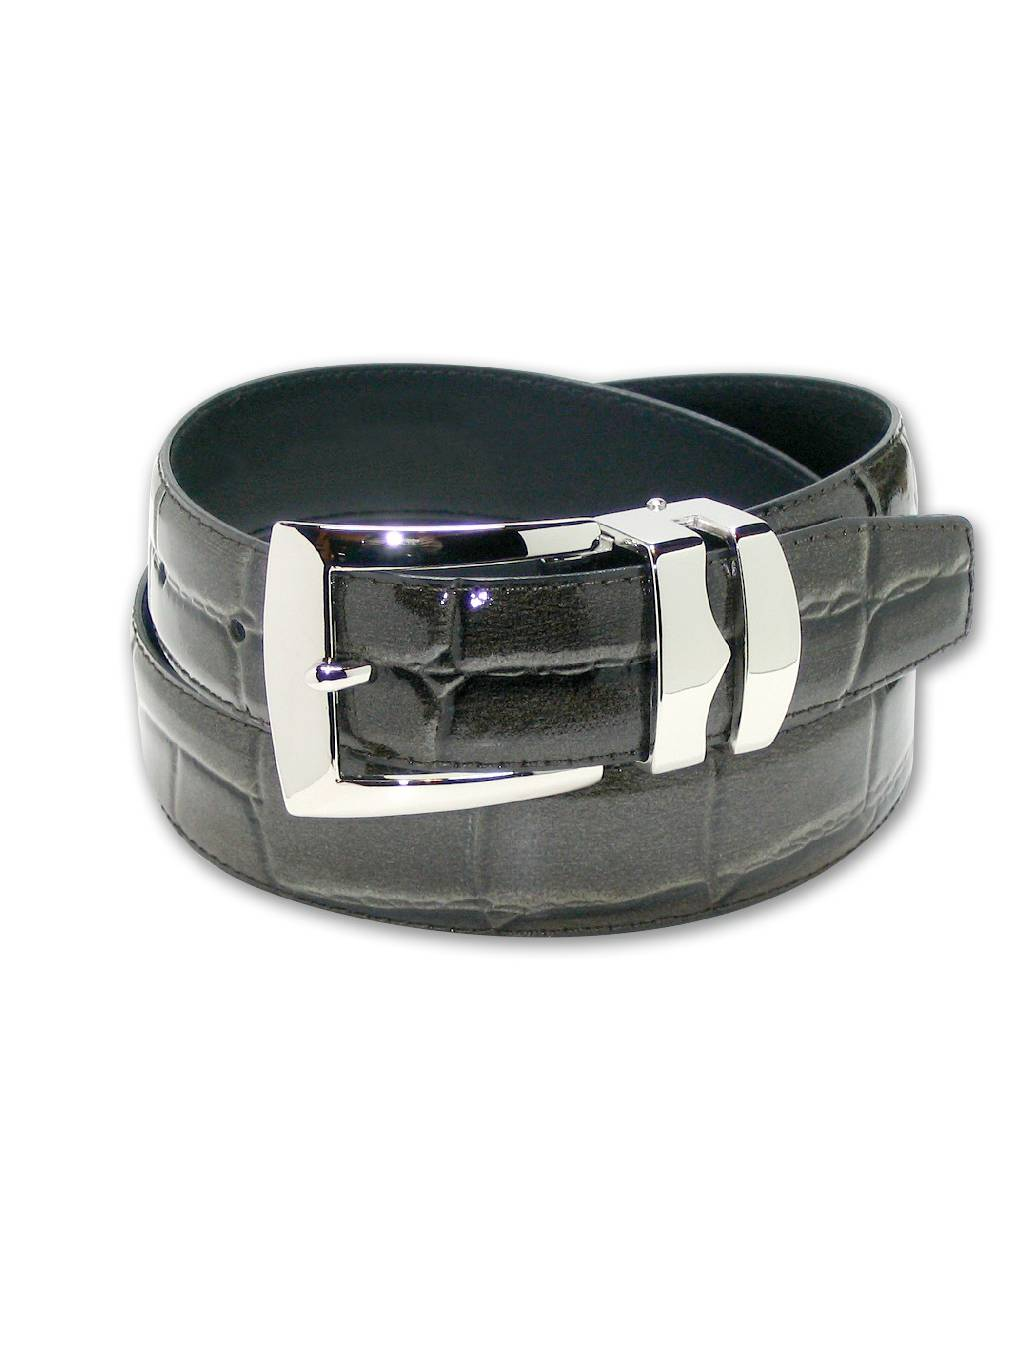 Mens Belt Reversible Wide Bonded Leather Silver-Tone Buckle LIME GREEN//Black